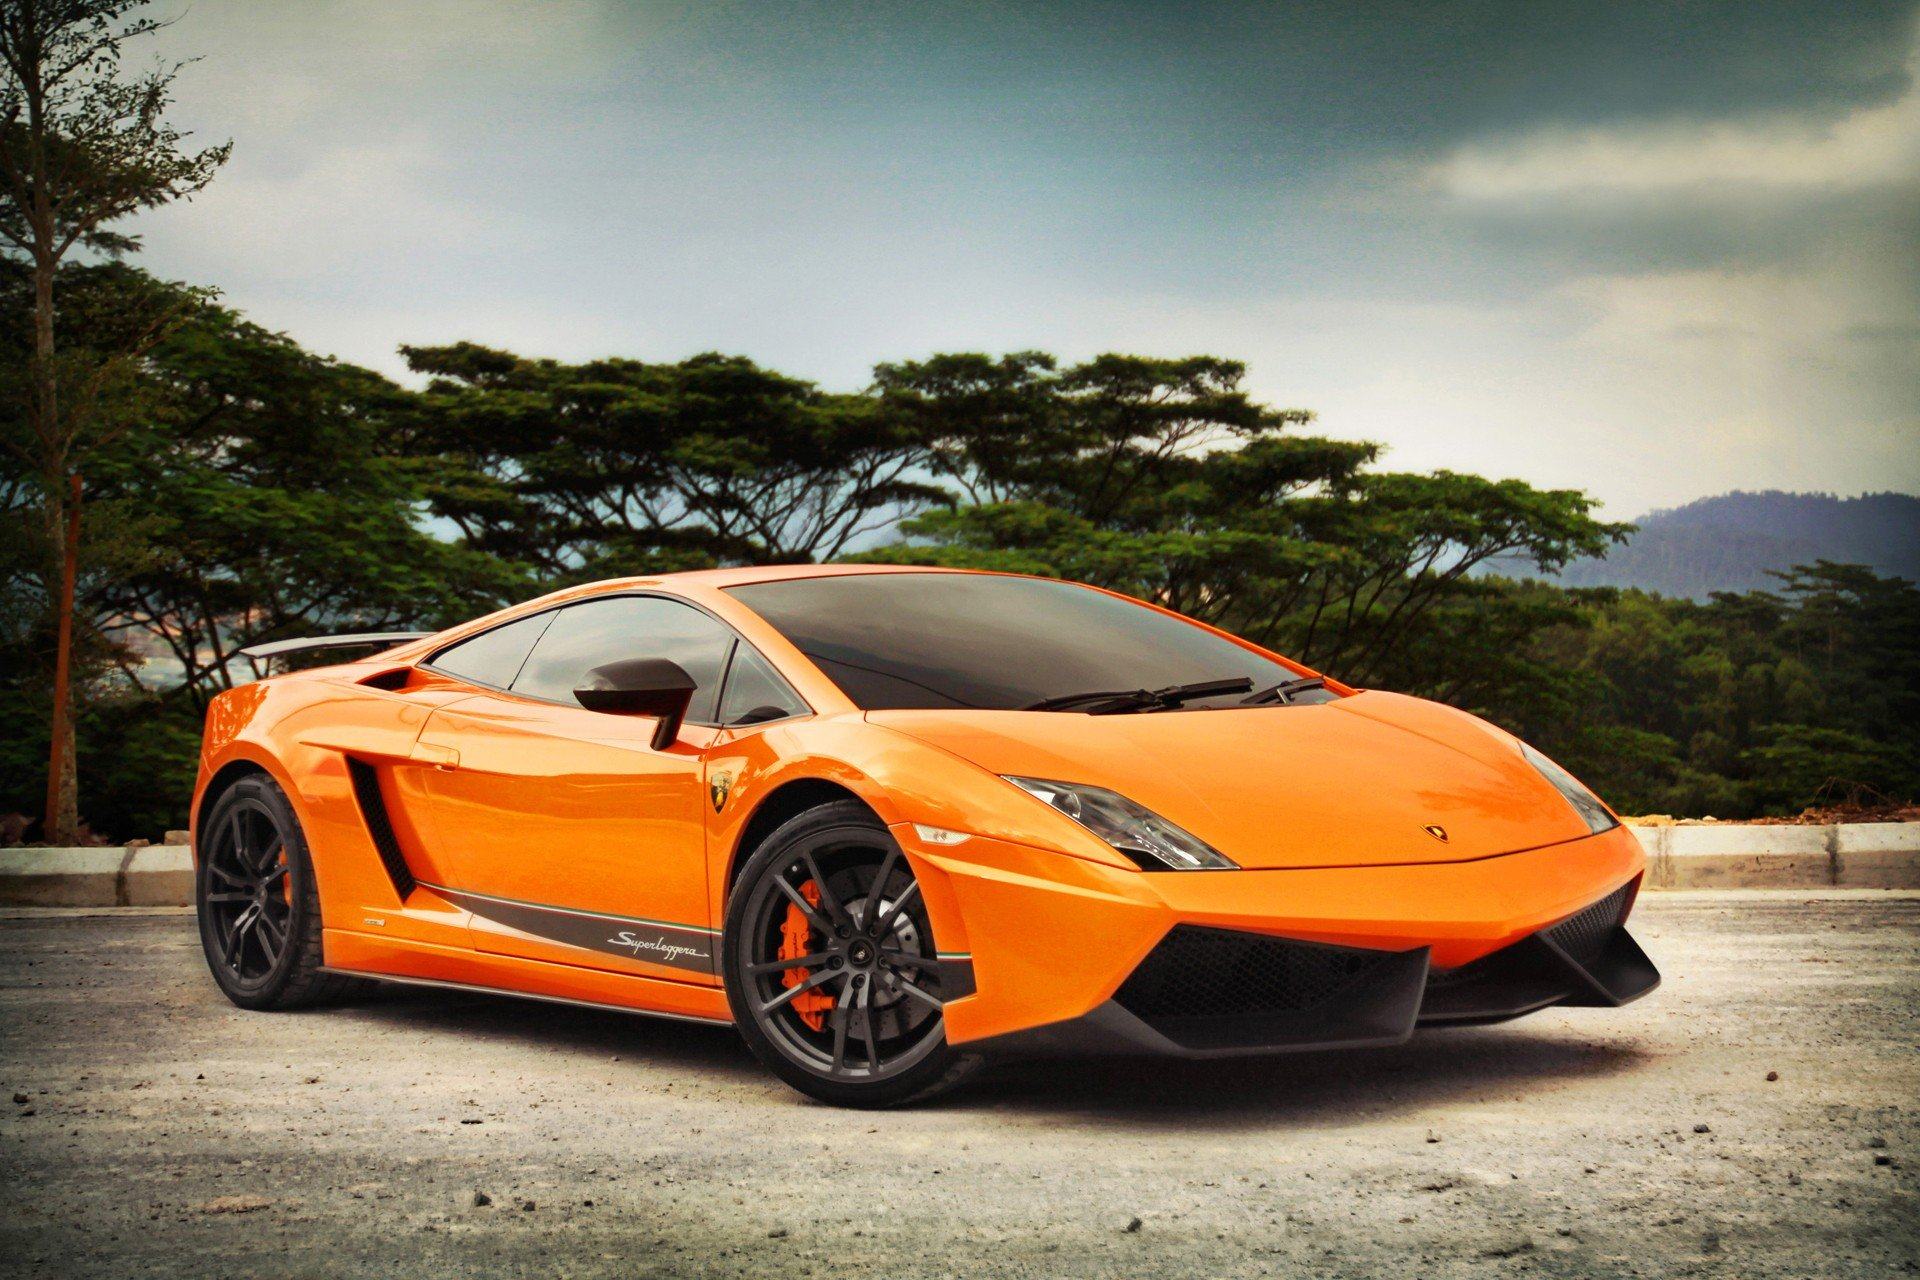 Cars Supercars Wallpaper 1920x1280 Cars, Supercars, Lamborghini ...